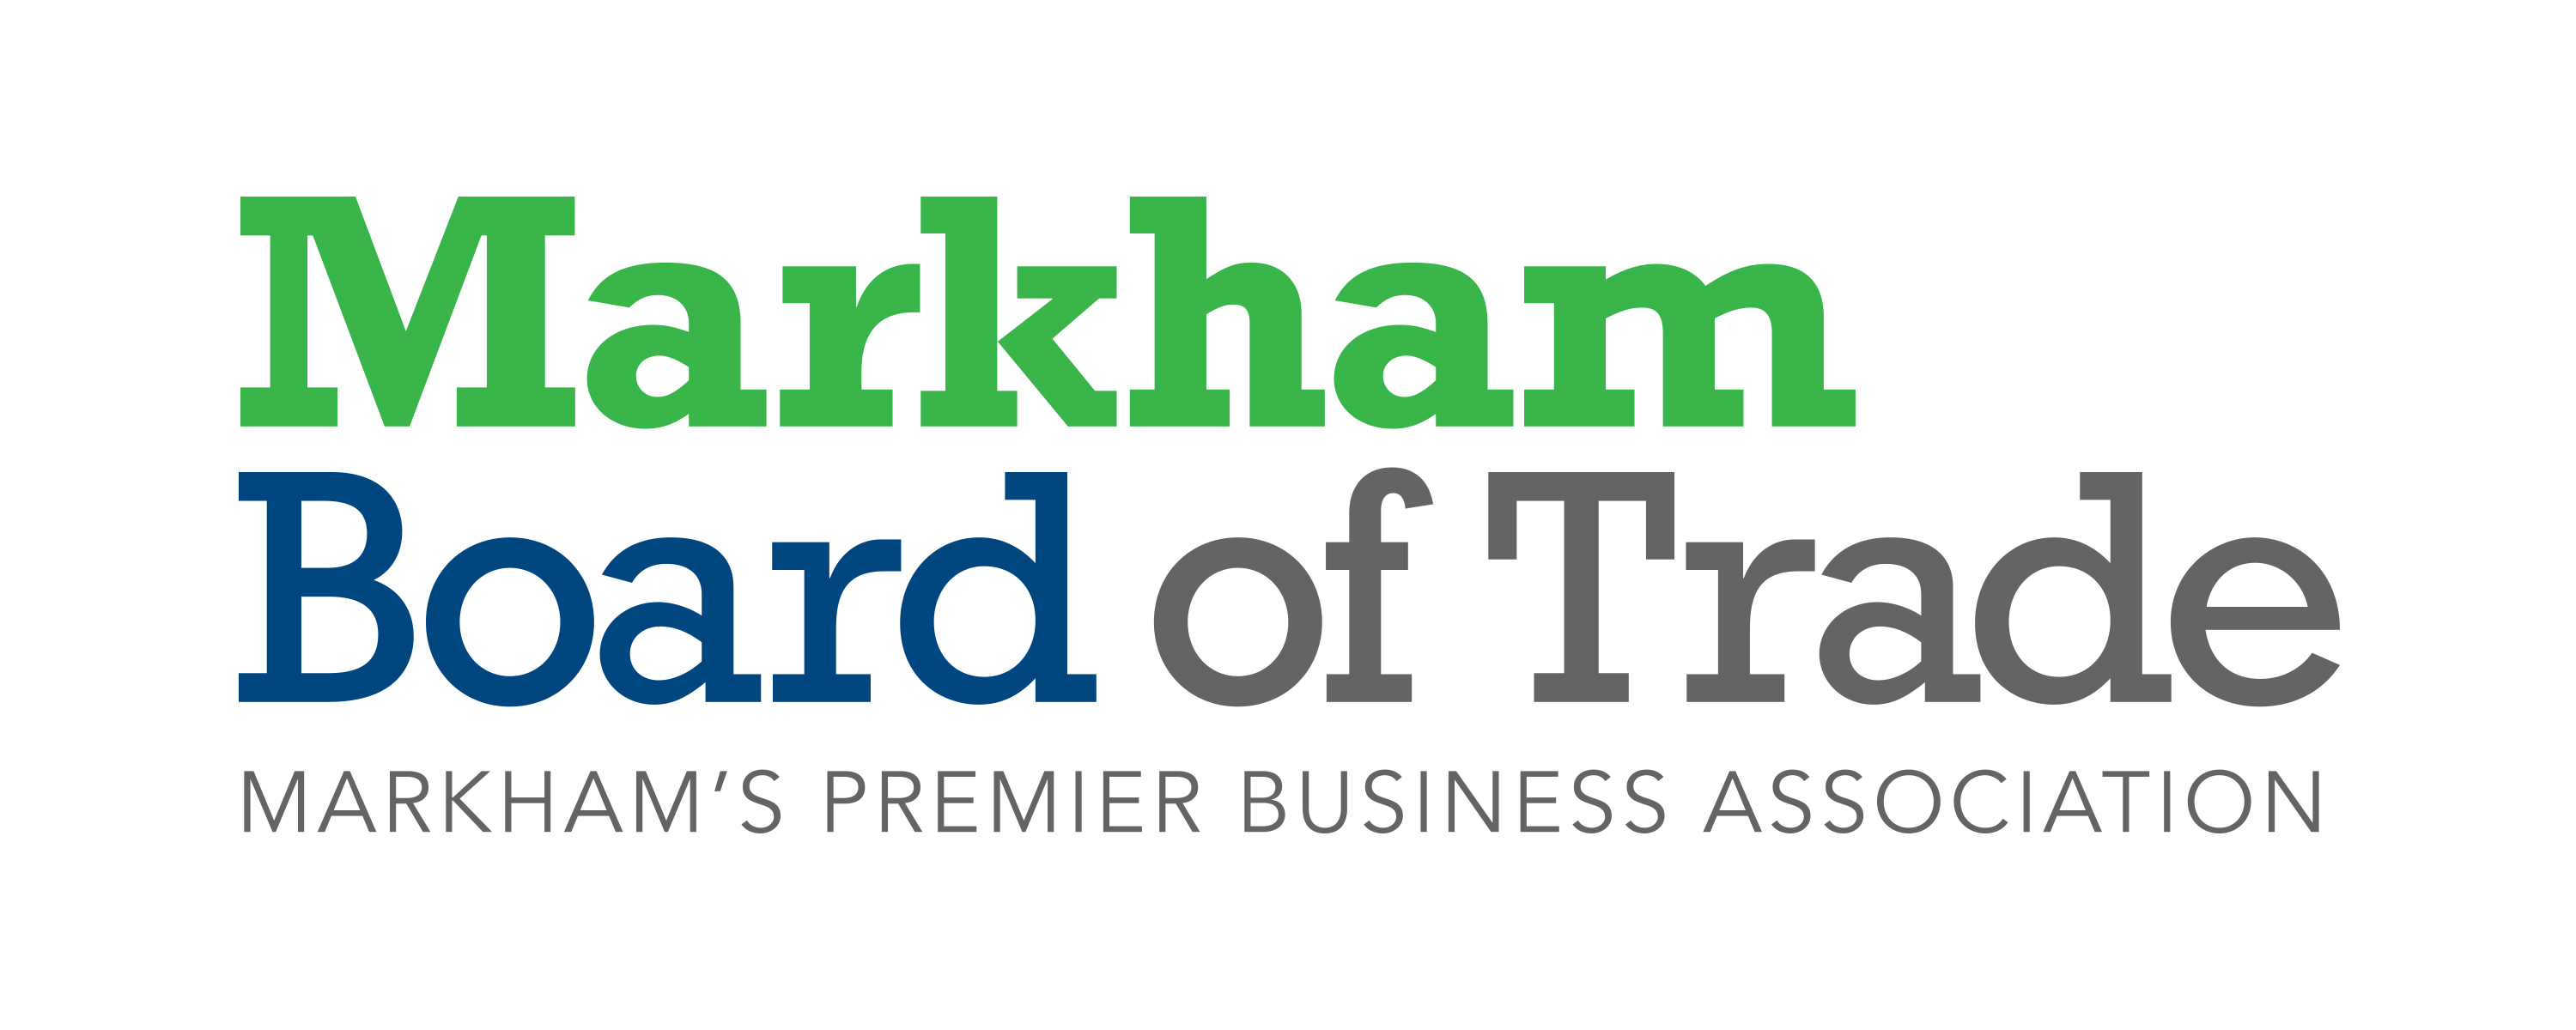 Markham Board of Trade logo